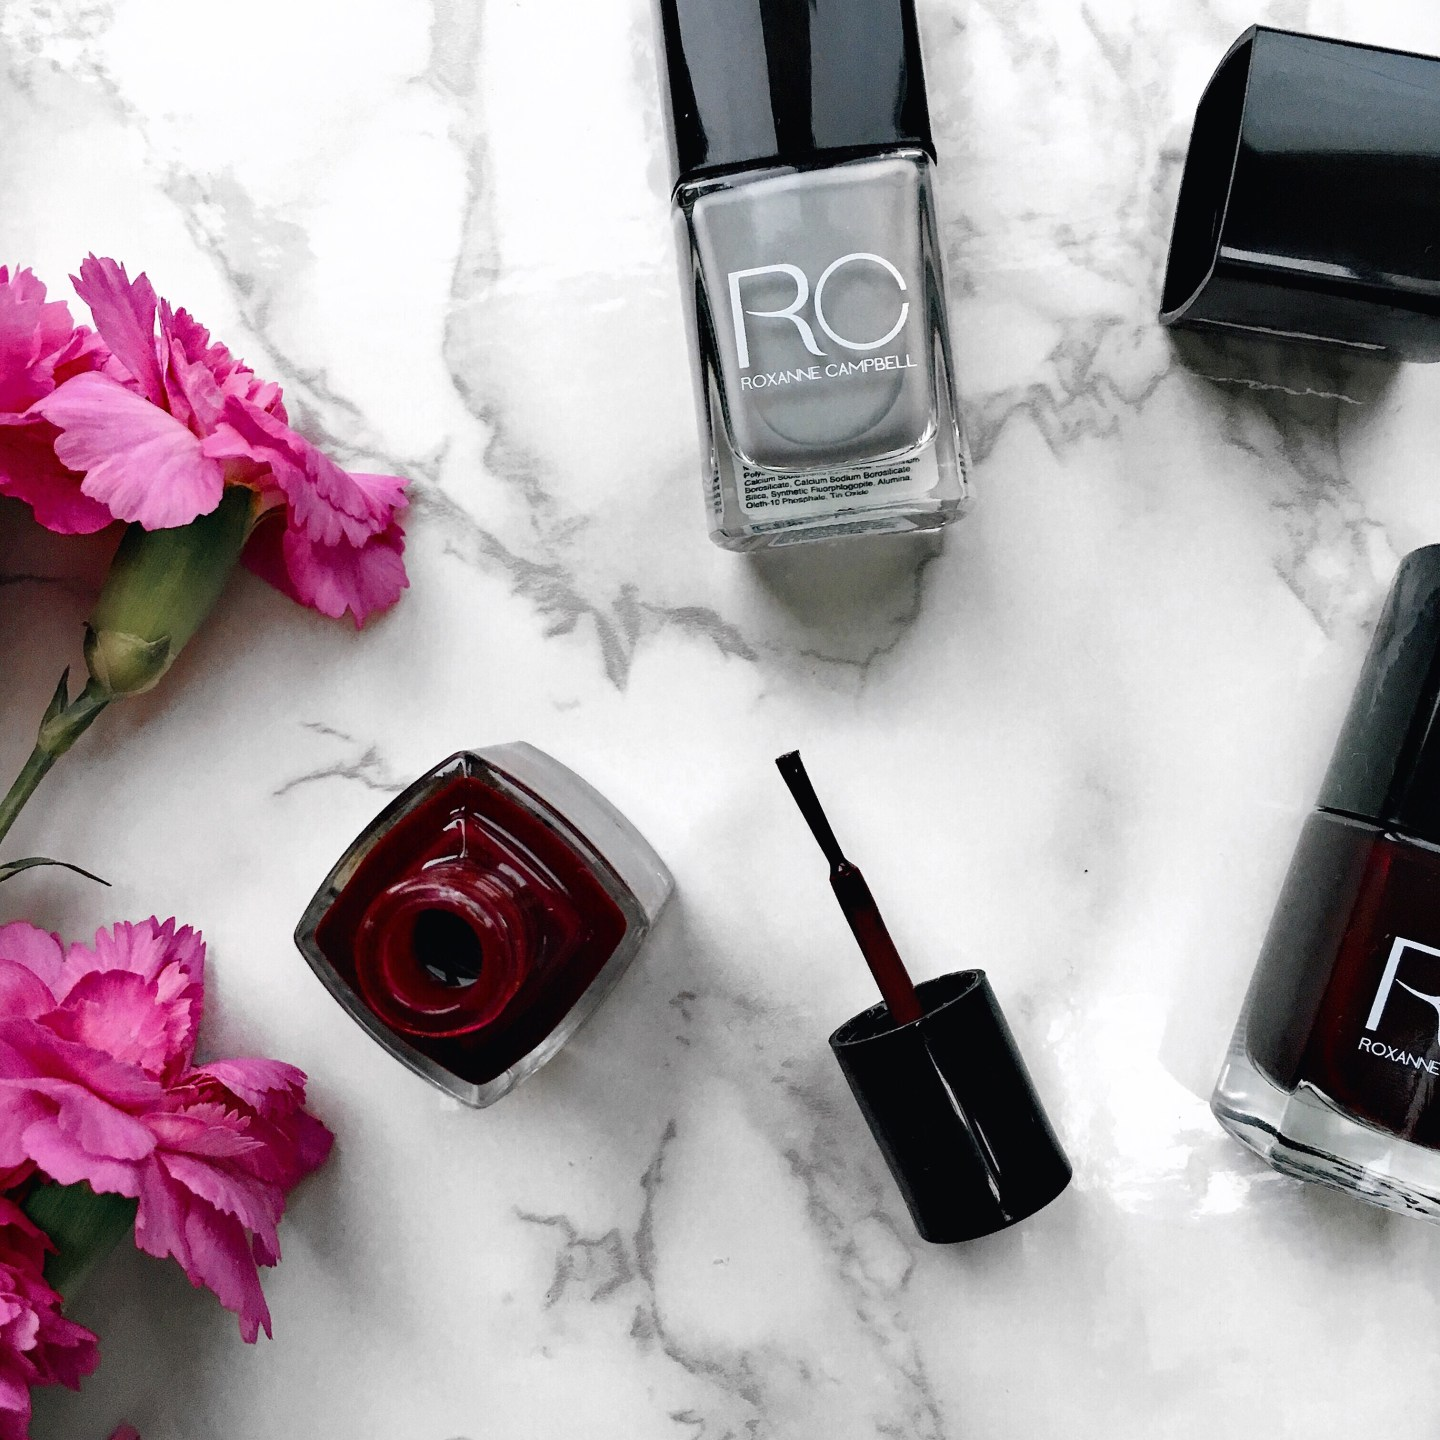 Roxanne Campbell Nail Lacquer Review + Giveaway